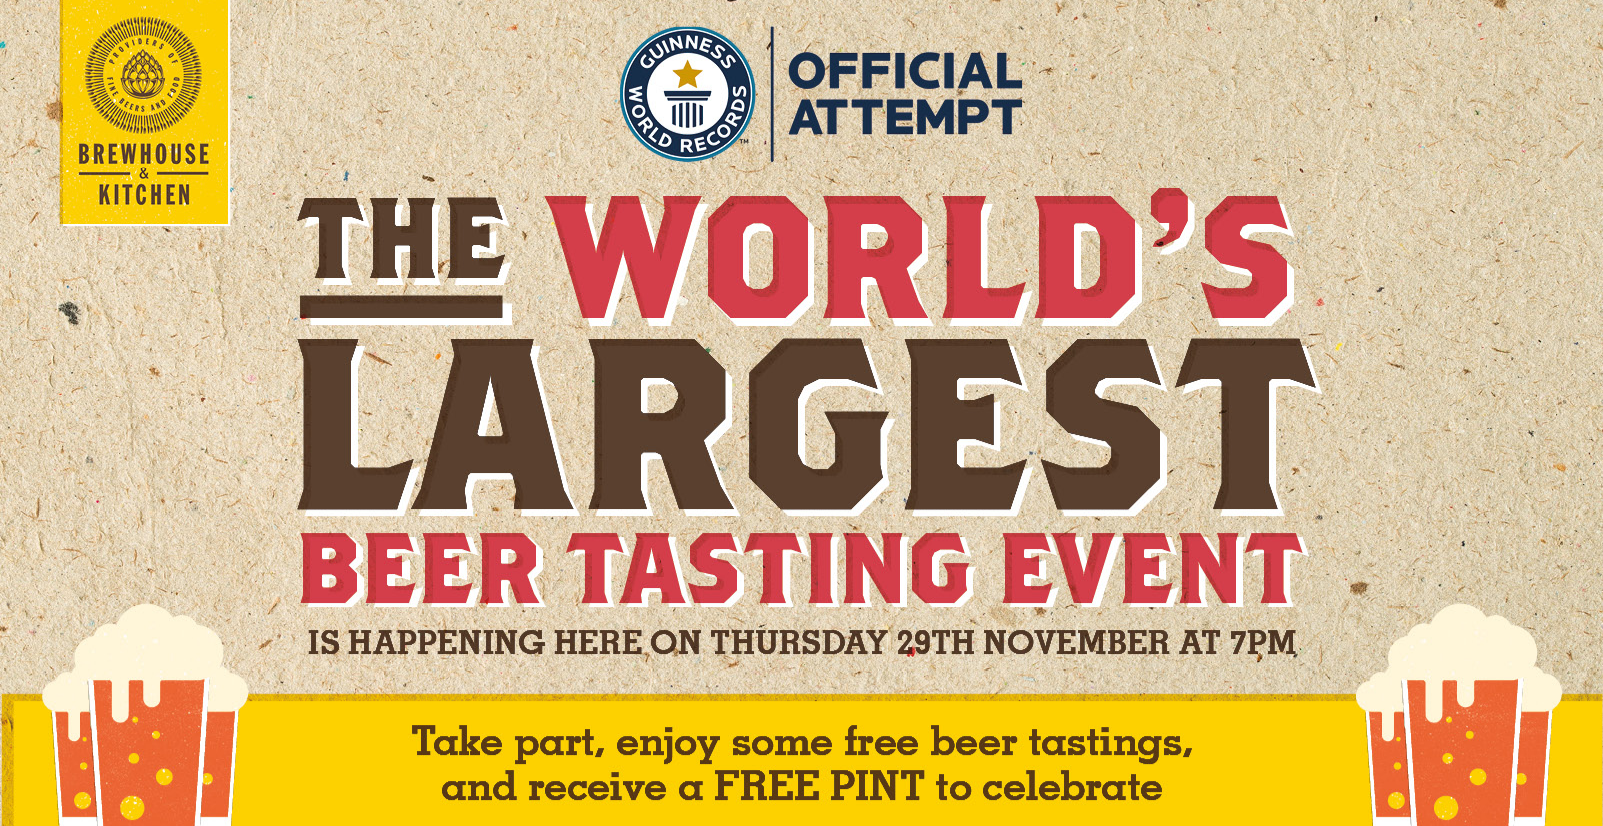 WORLD'S LARGEST BEER TASTING EVENT